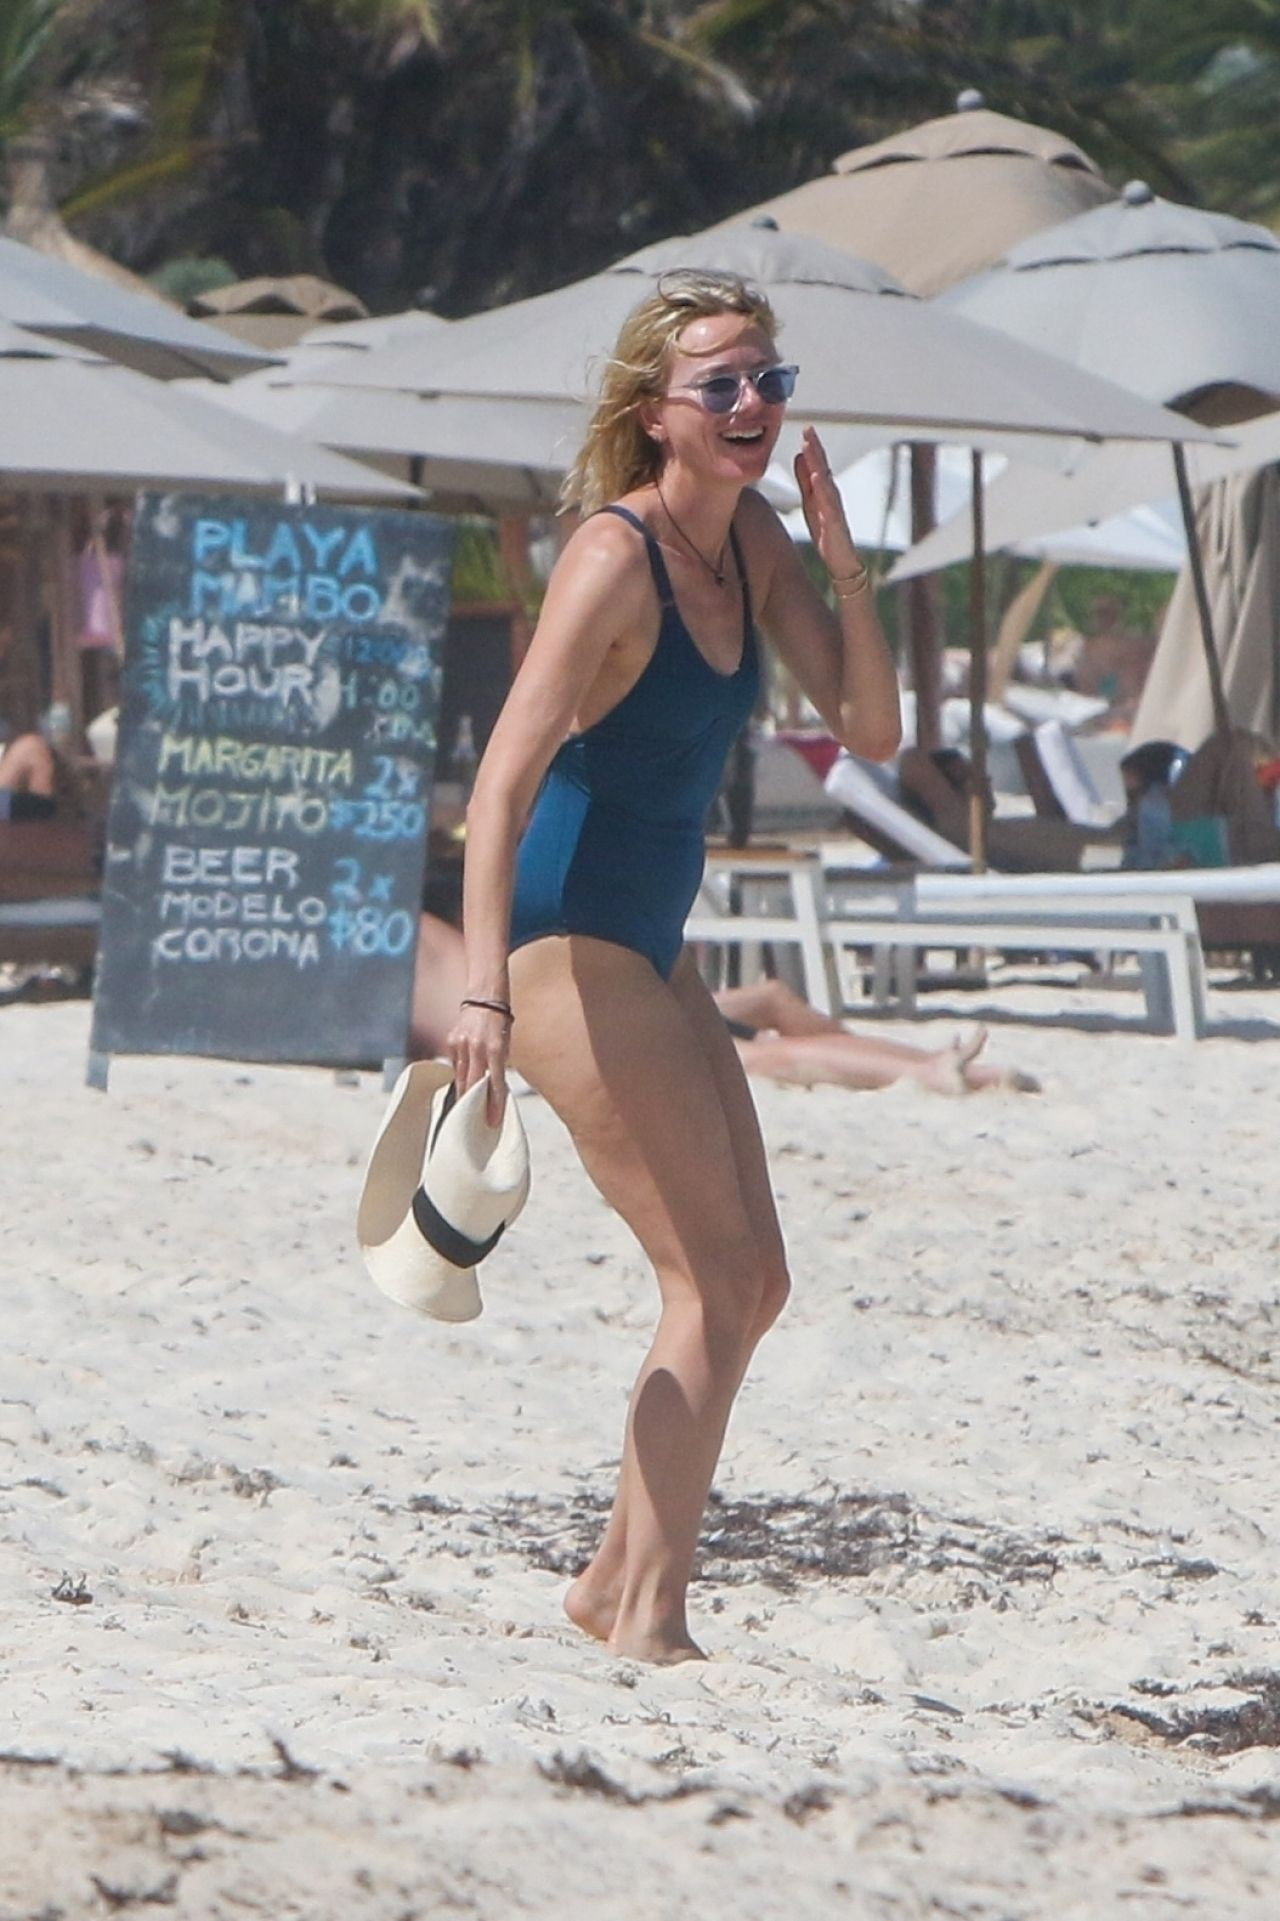 naomi-watts-in-a-blue-swimsuit-on-the-beach-in-tulum-04-05-2018-17.jpg